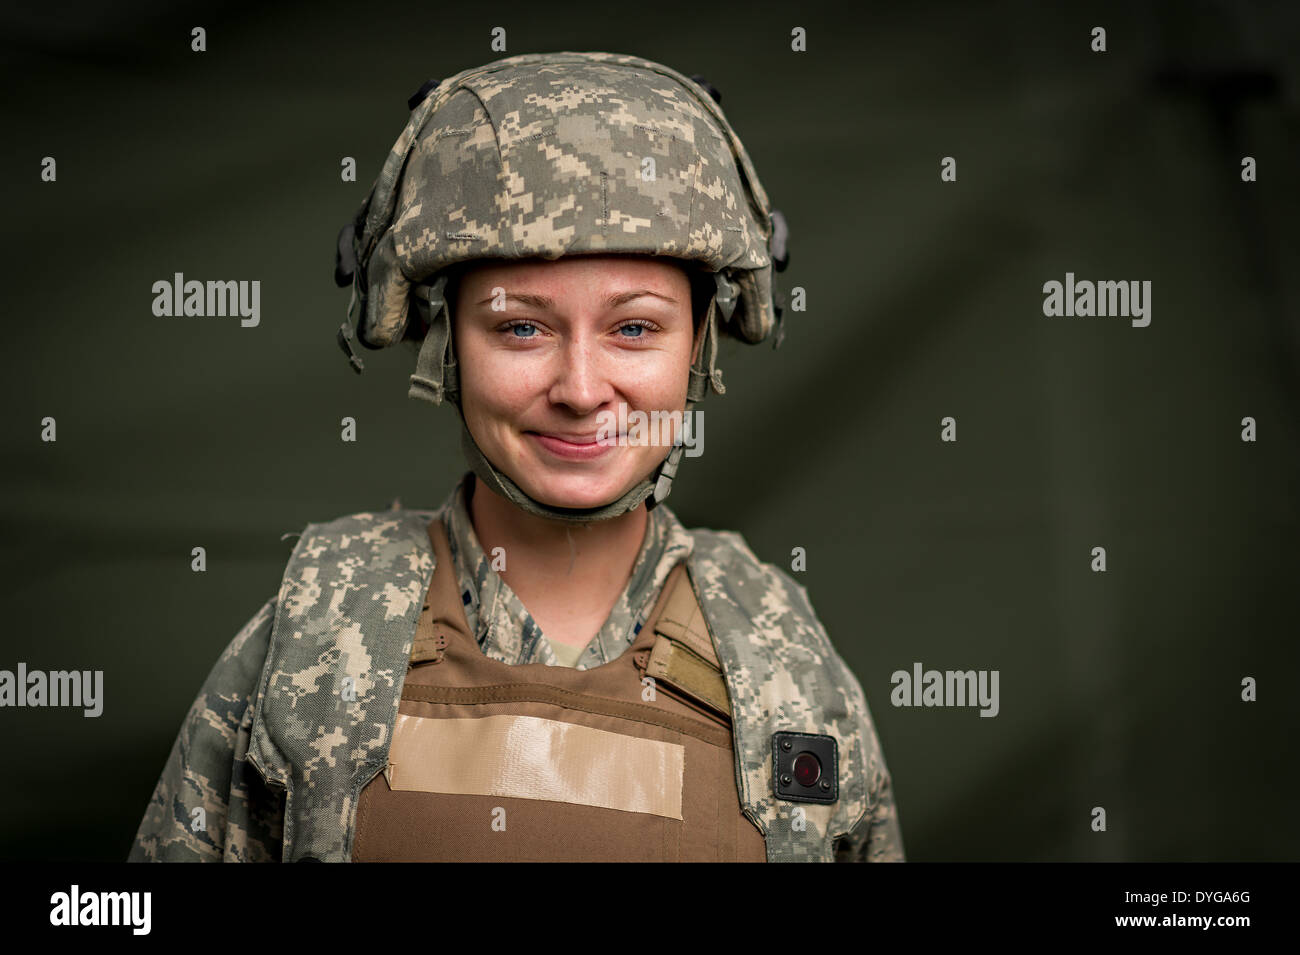 US Air Force 1st Lt. Ashley Stansberry, a flight nurse with the 86th Aeromedical Evacuation Squadron, during readiness training March 15, 2014 at Fort Polk, Lousianna. - Stock Image